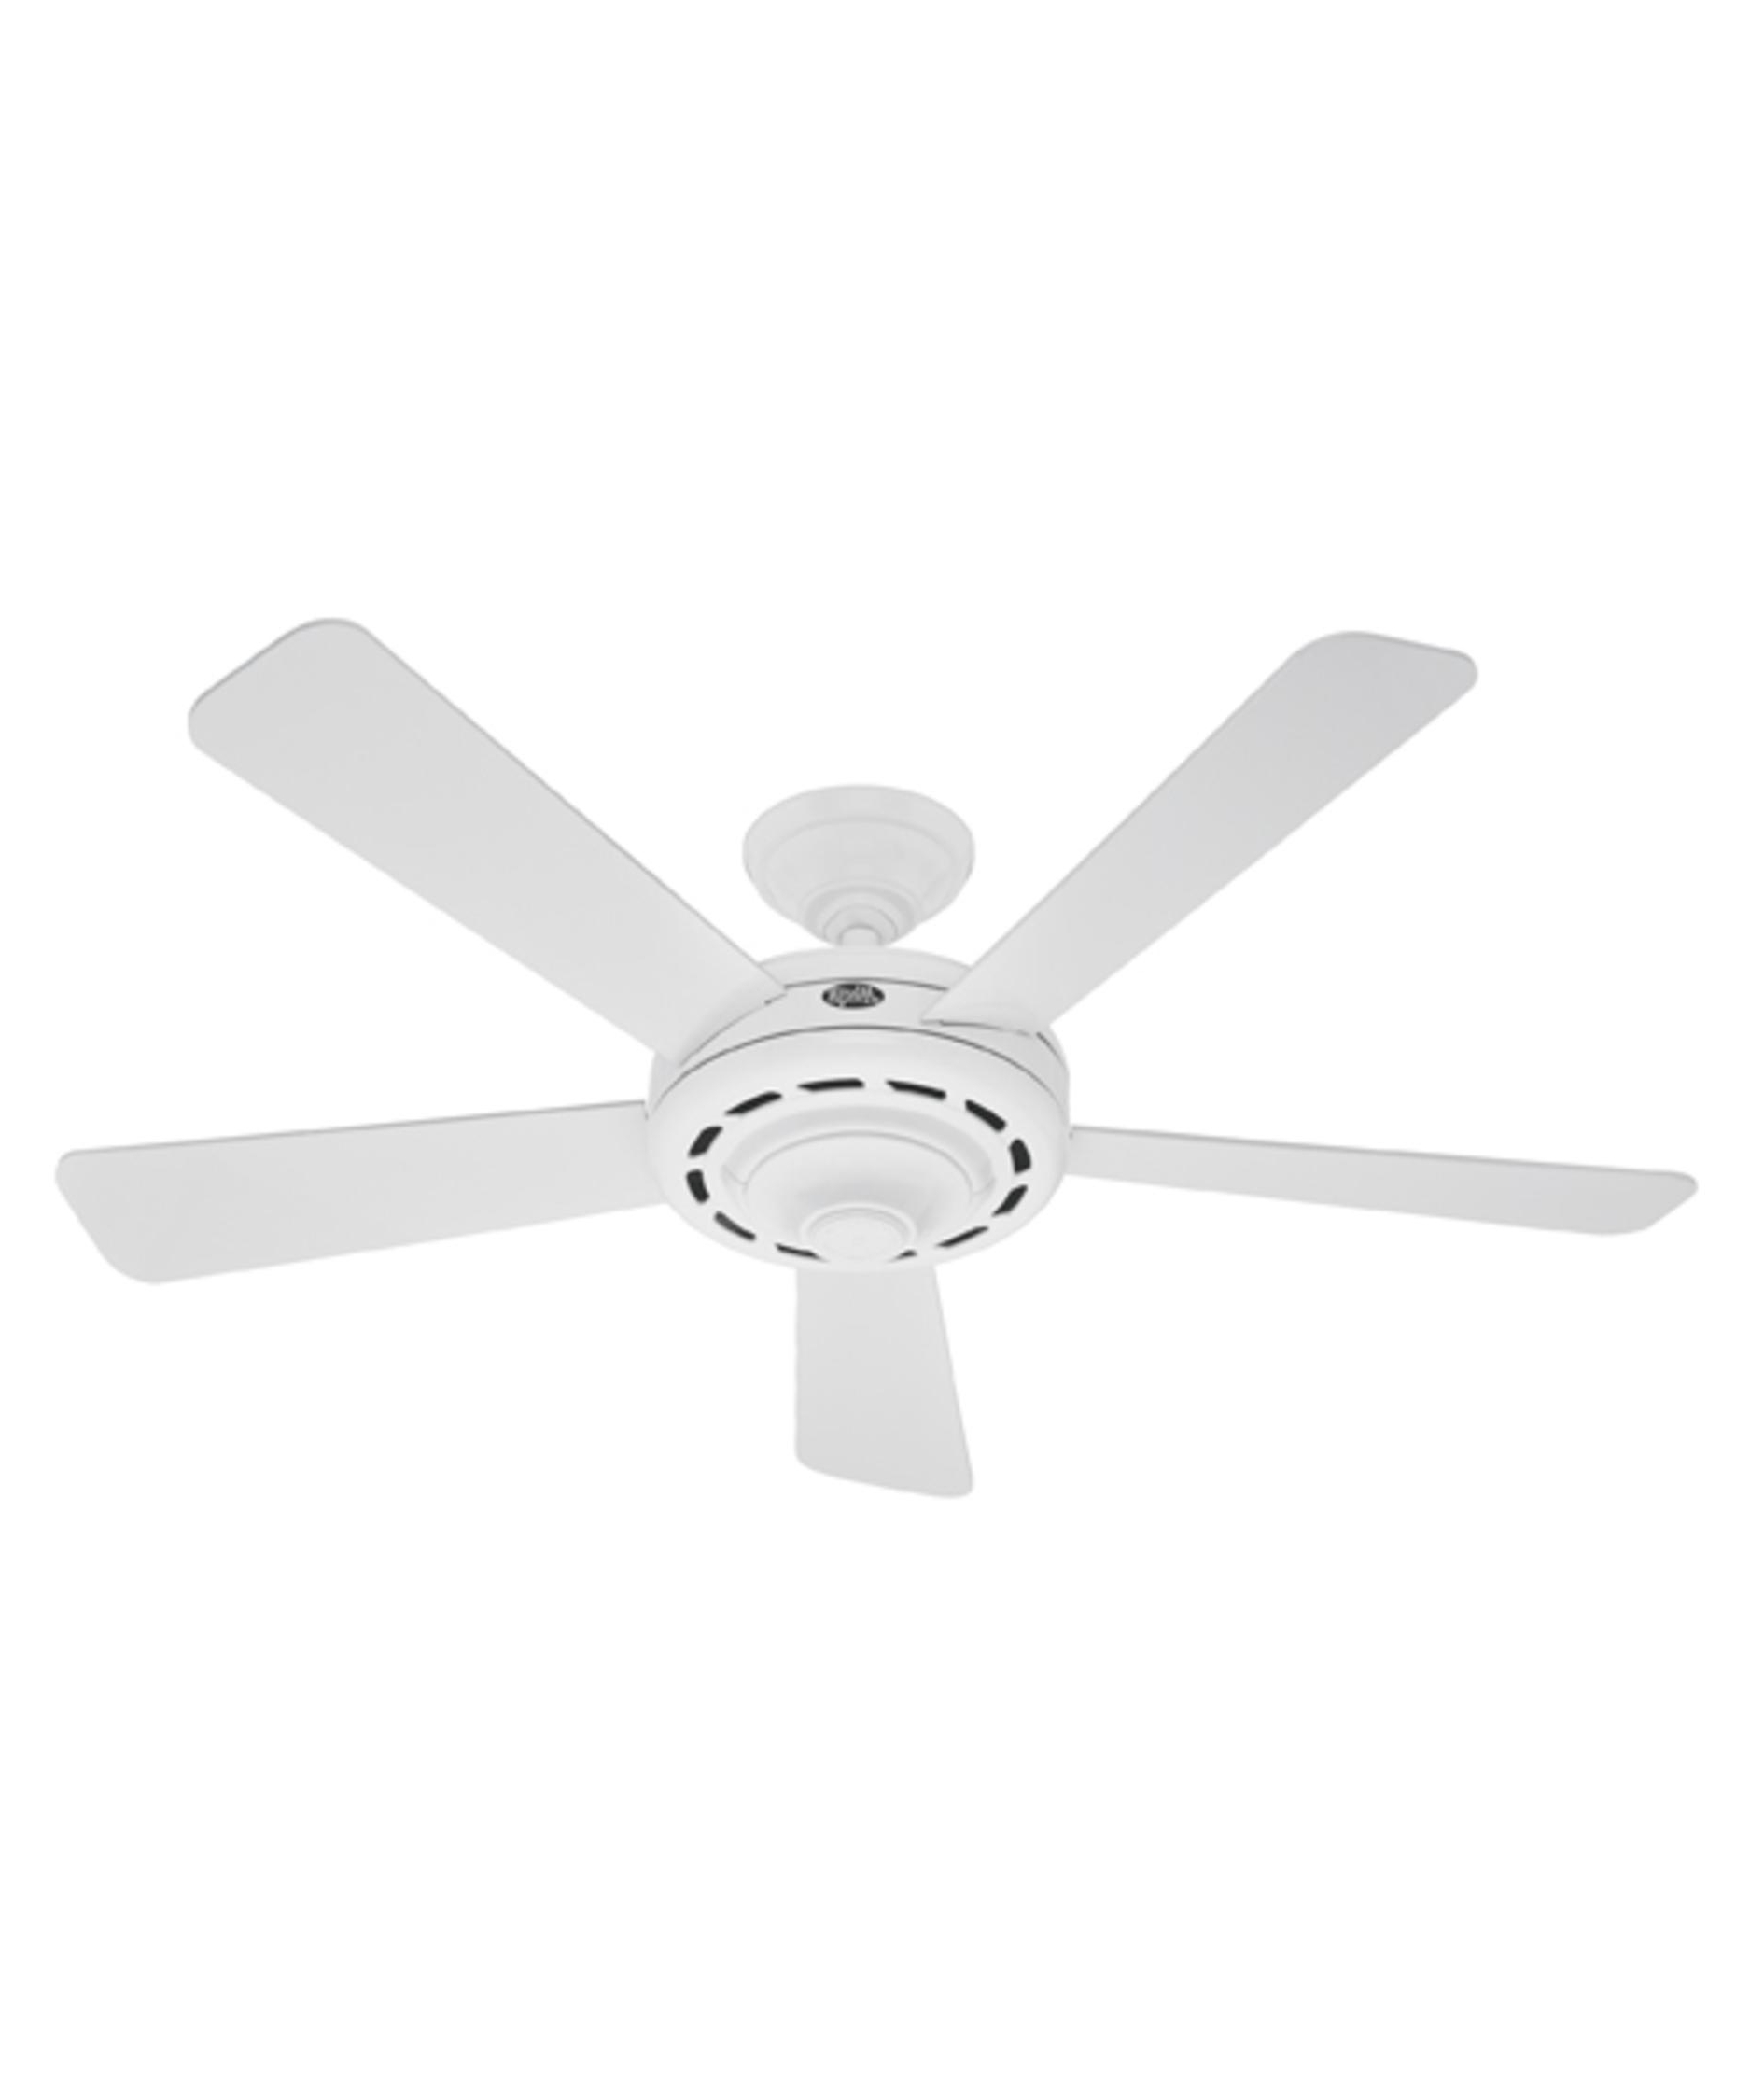 Energy Star Outdoor Ceiling Fans With Light Regarding Popular Hunter Fan 25866 Dimensions 52 Inch 5 Blade Ceiling Fan (View 11 of 20)